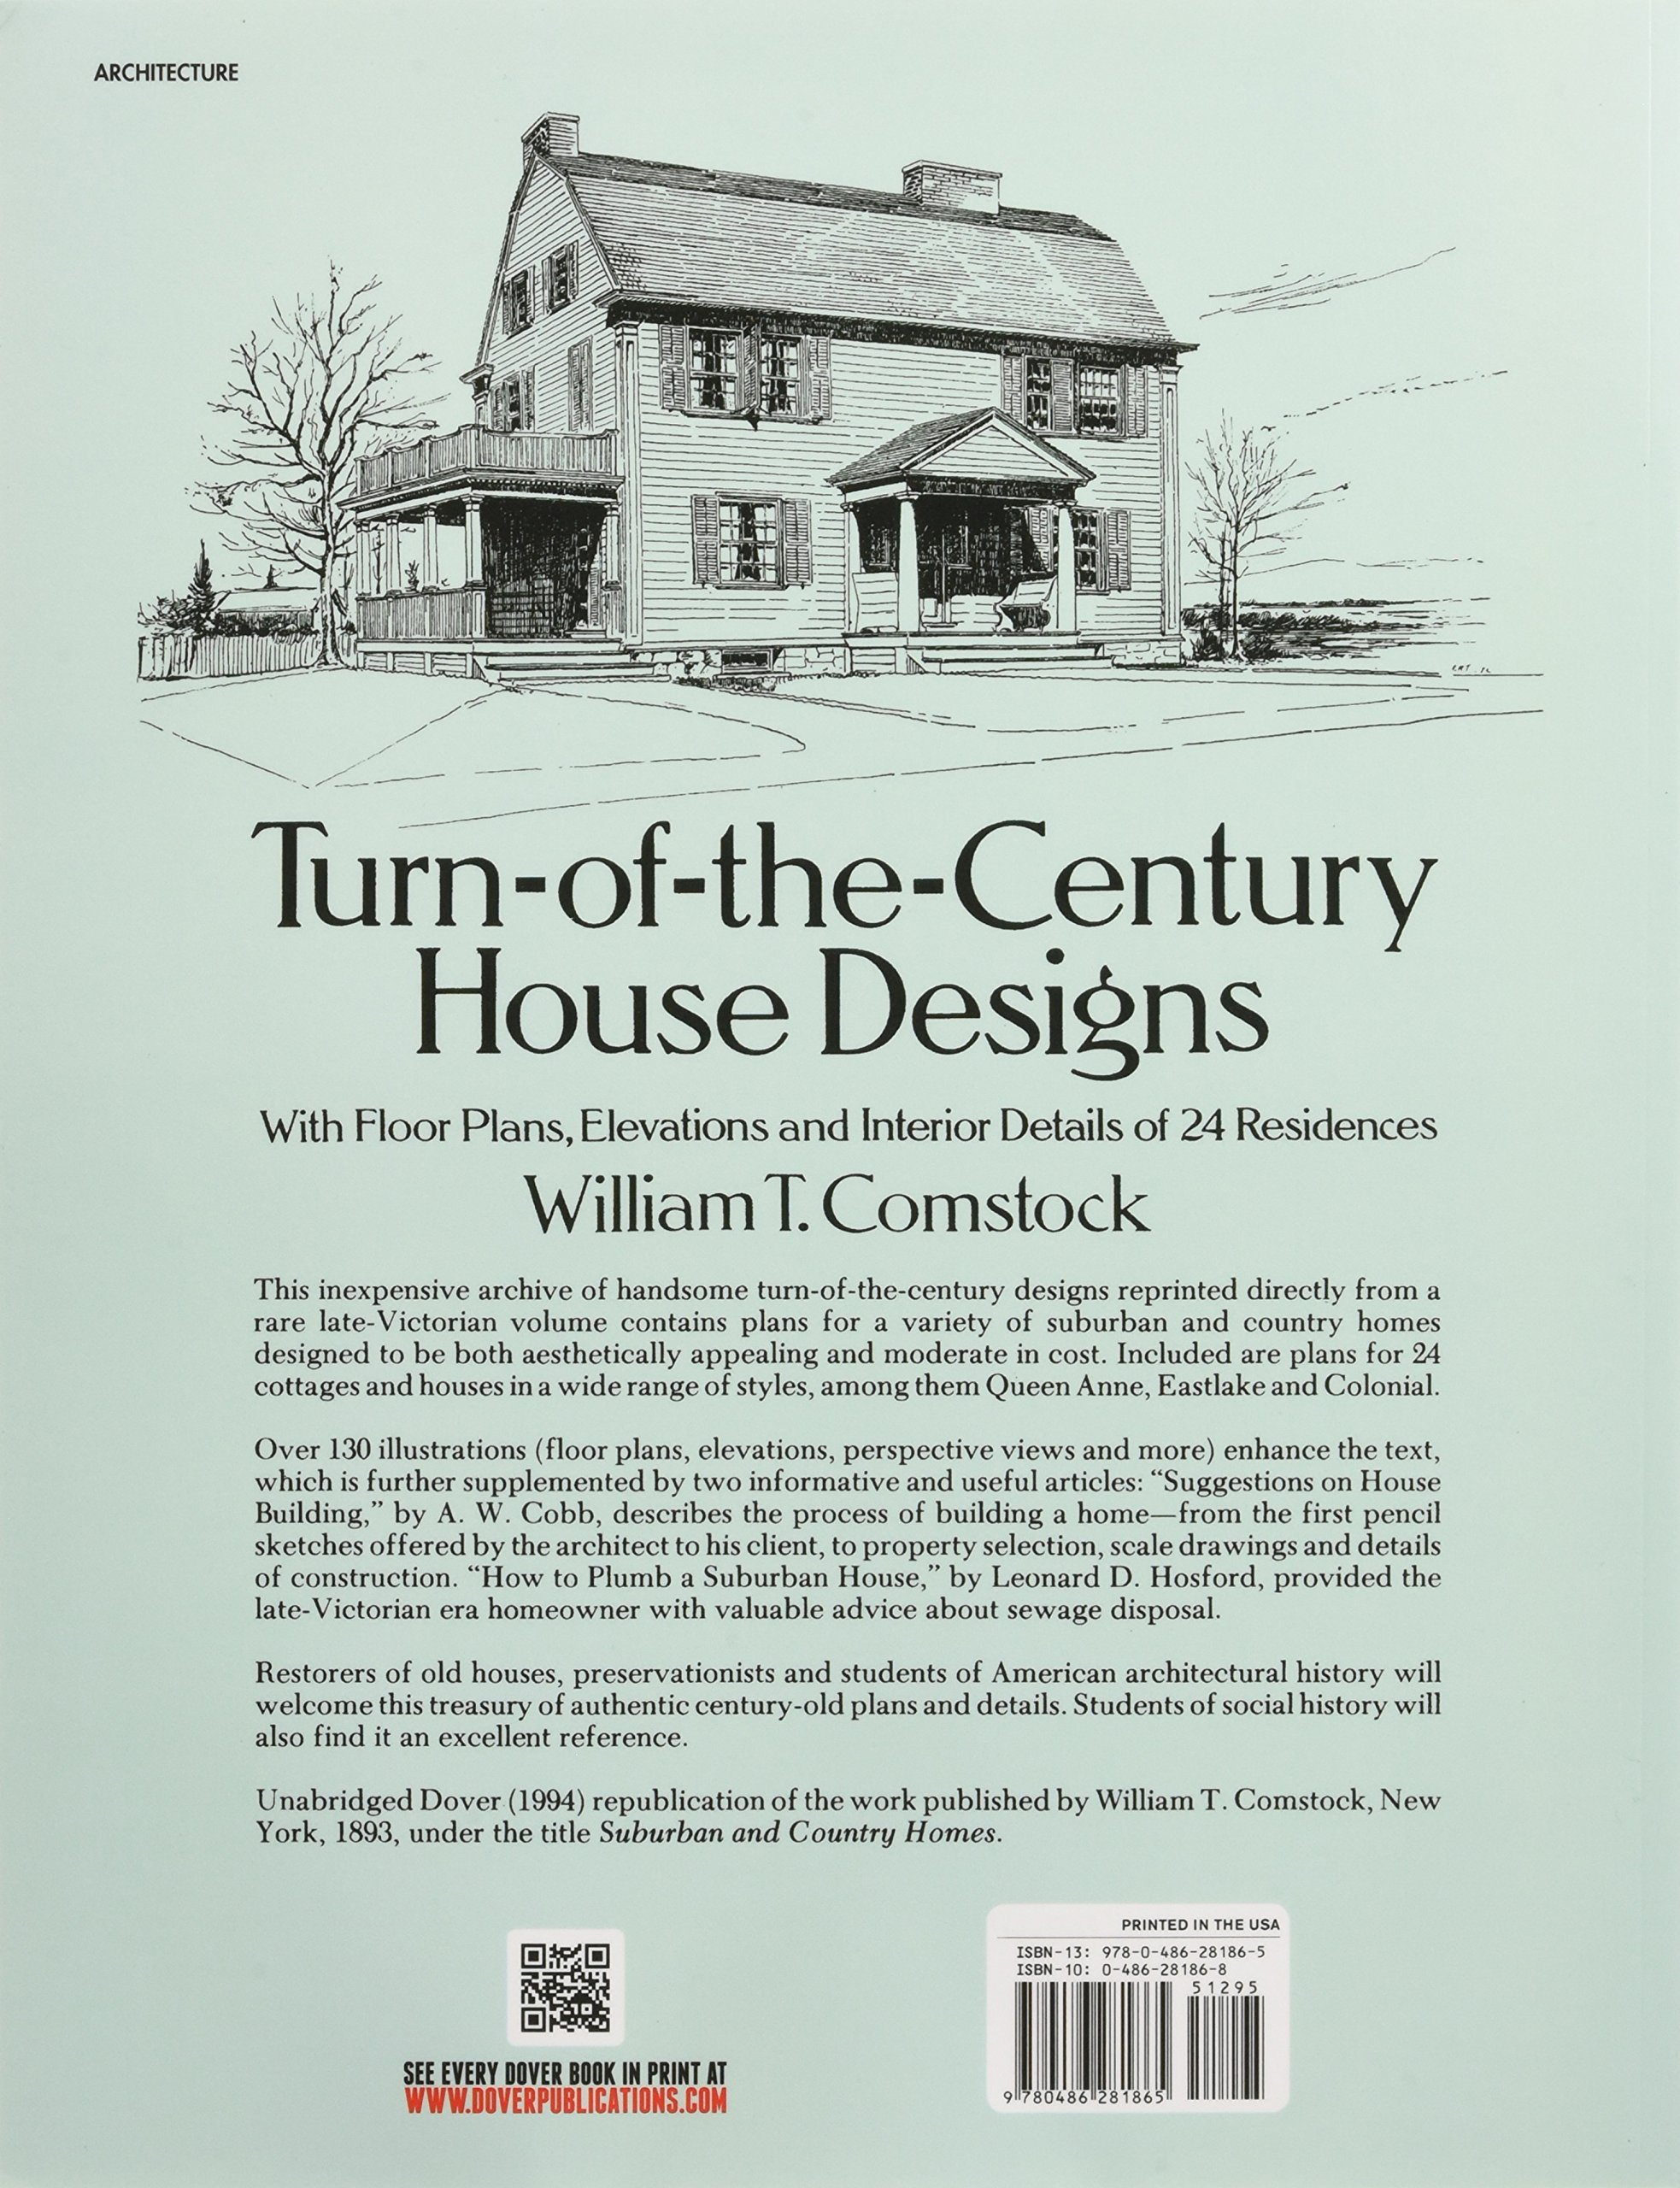 Turn of the century house designs with floor plans elevations and interior details of 24 residences dover architecture william t comstock